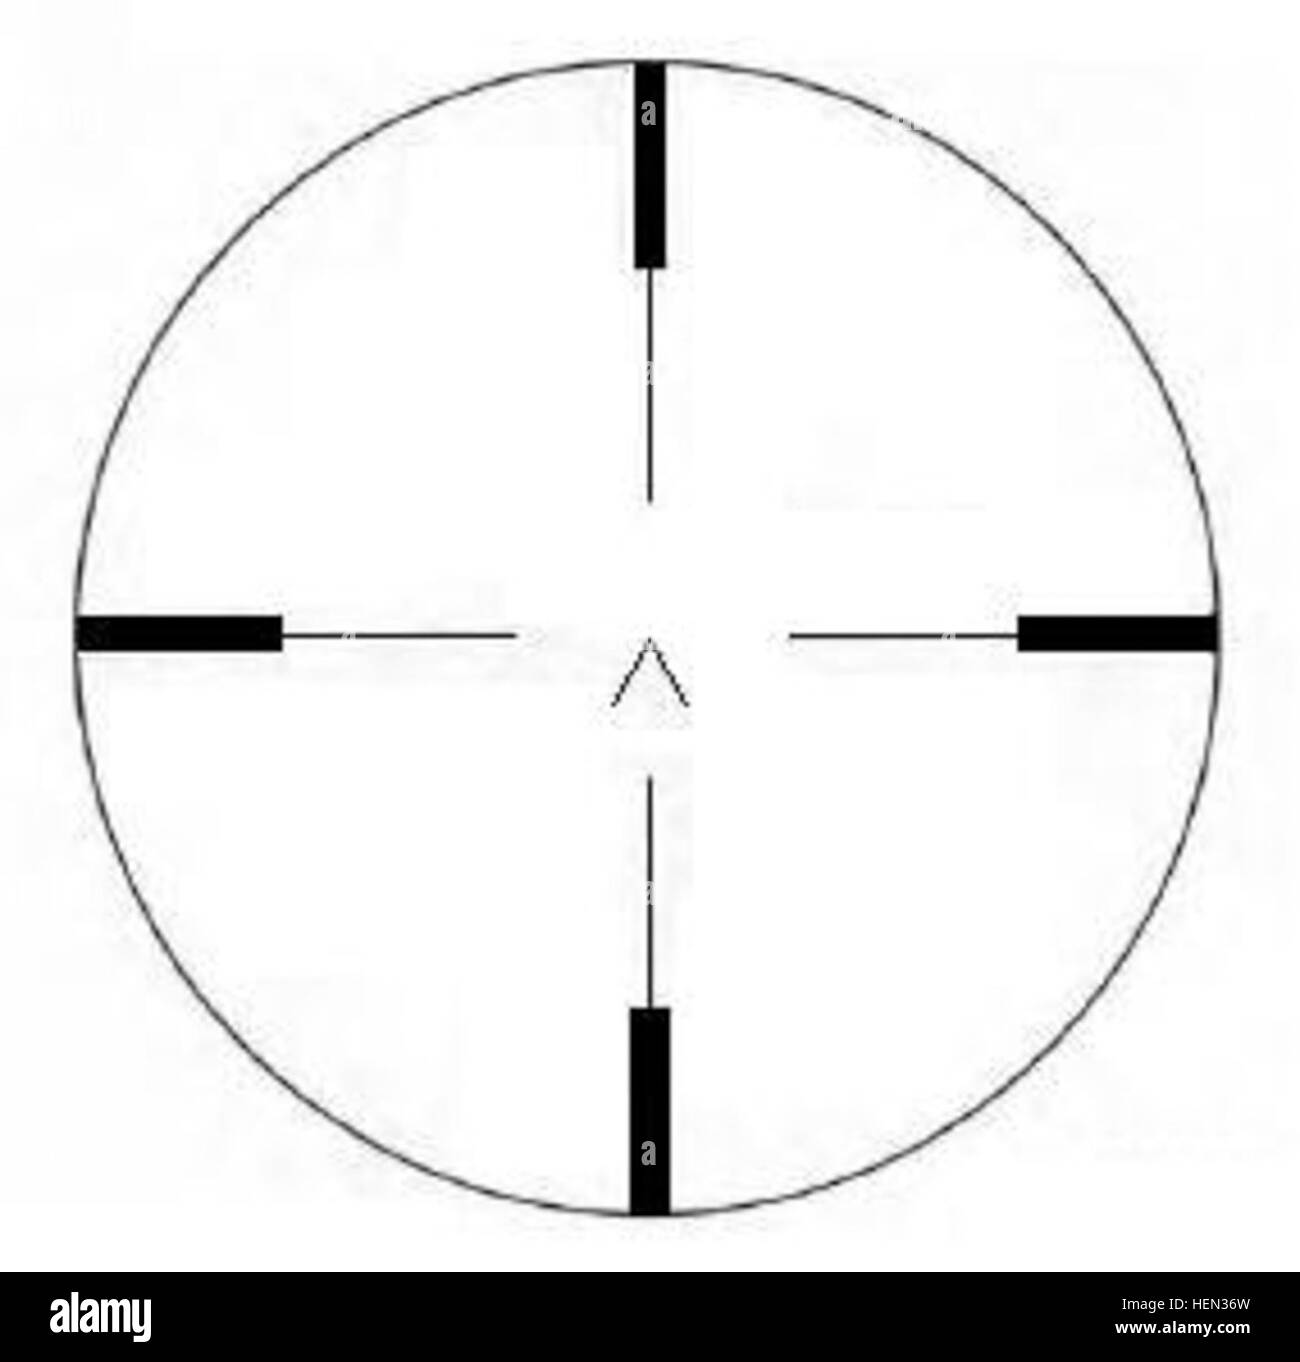 Z.F. 20E reticle 8,8cm Flak 18,36,37 Direct Fire Sight - Stock Image